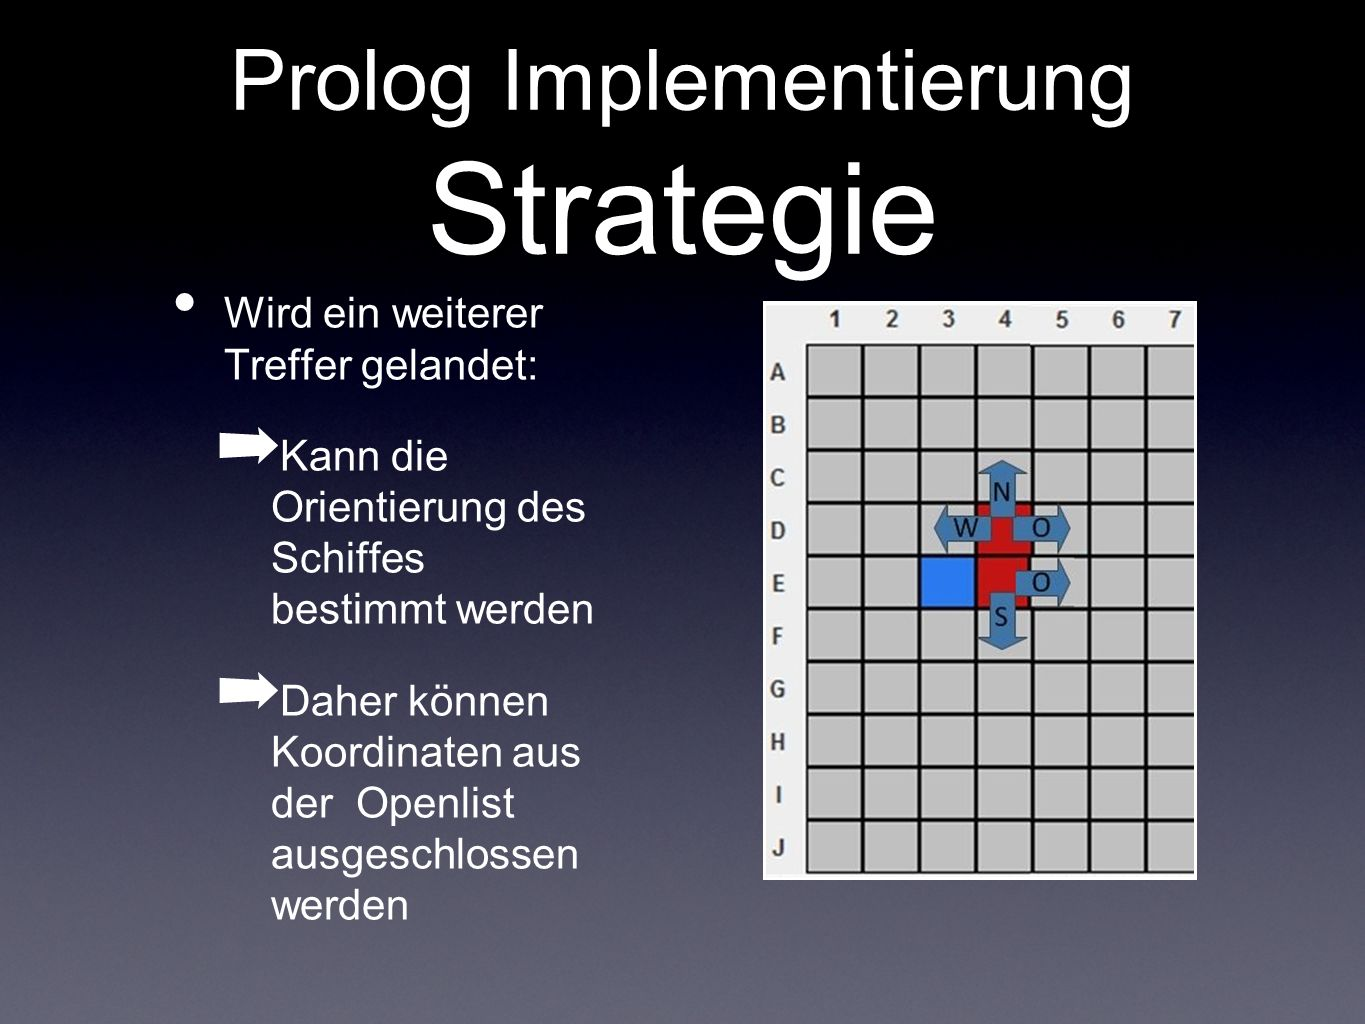 Prolog Implementierung Strategie